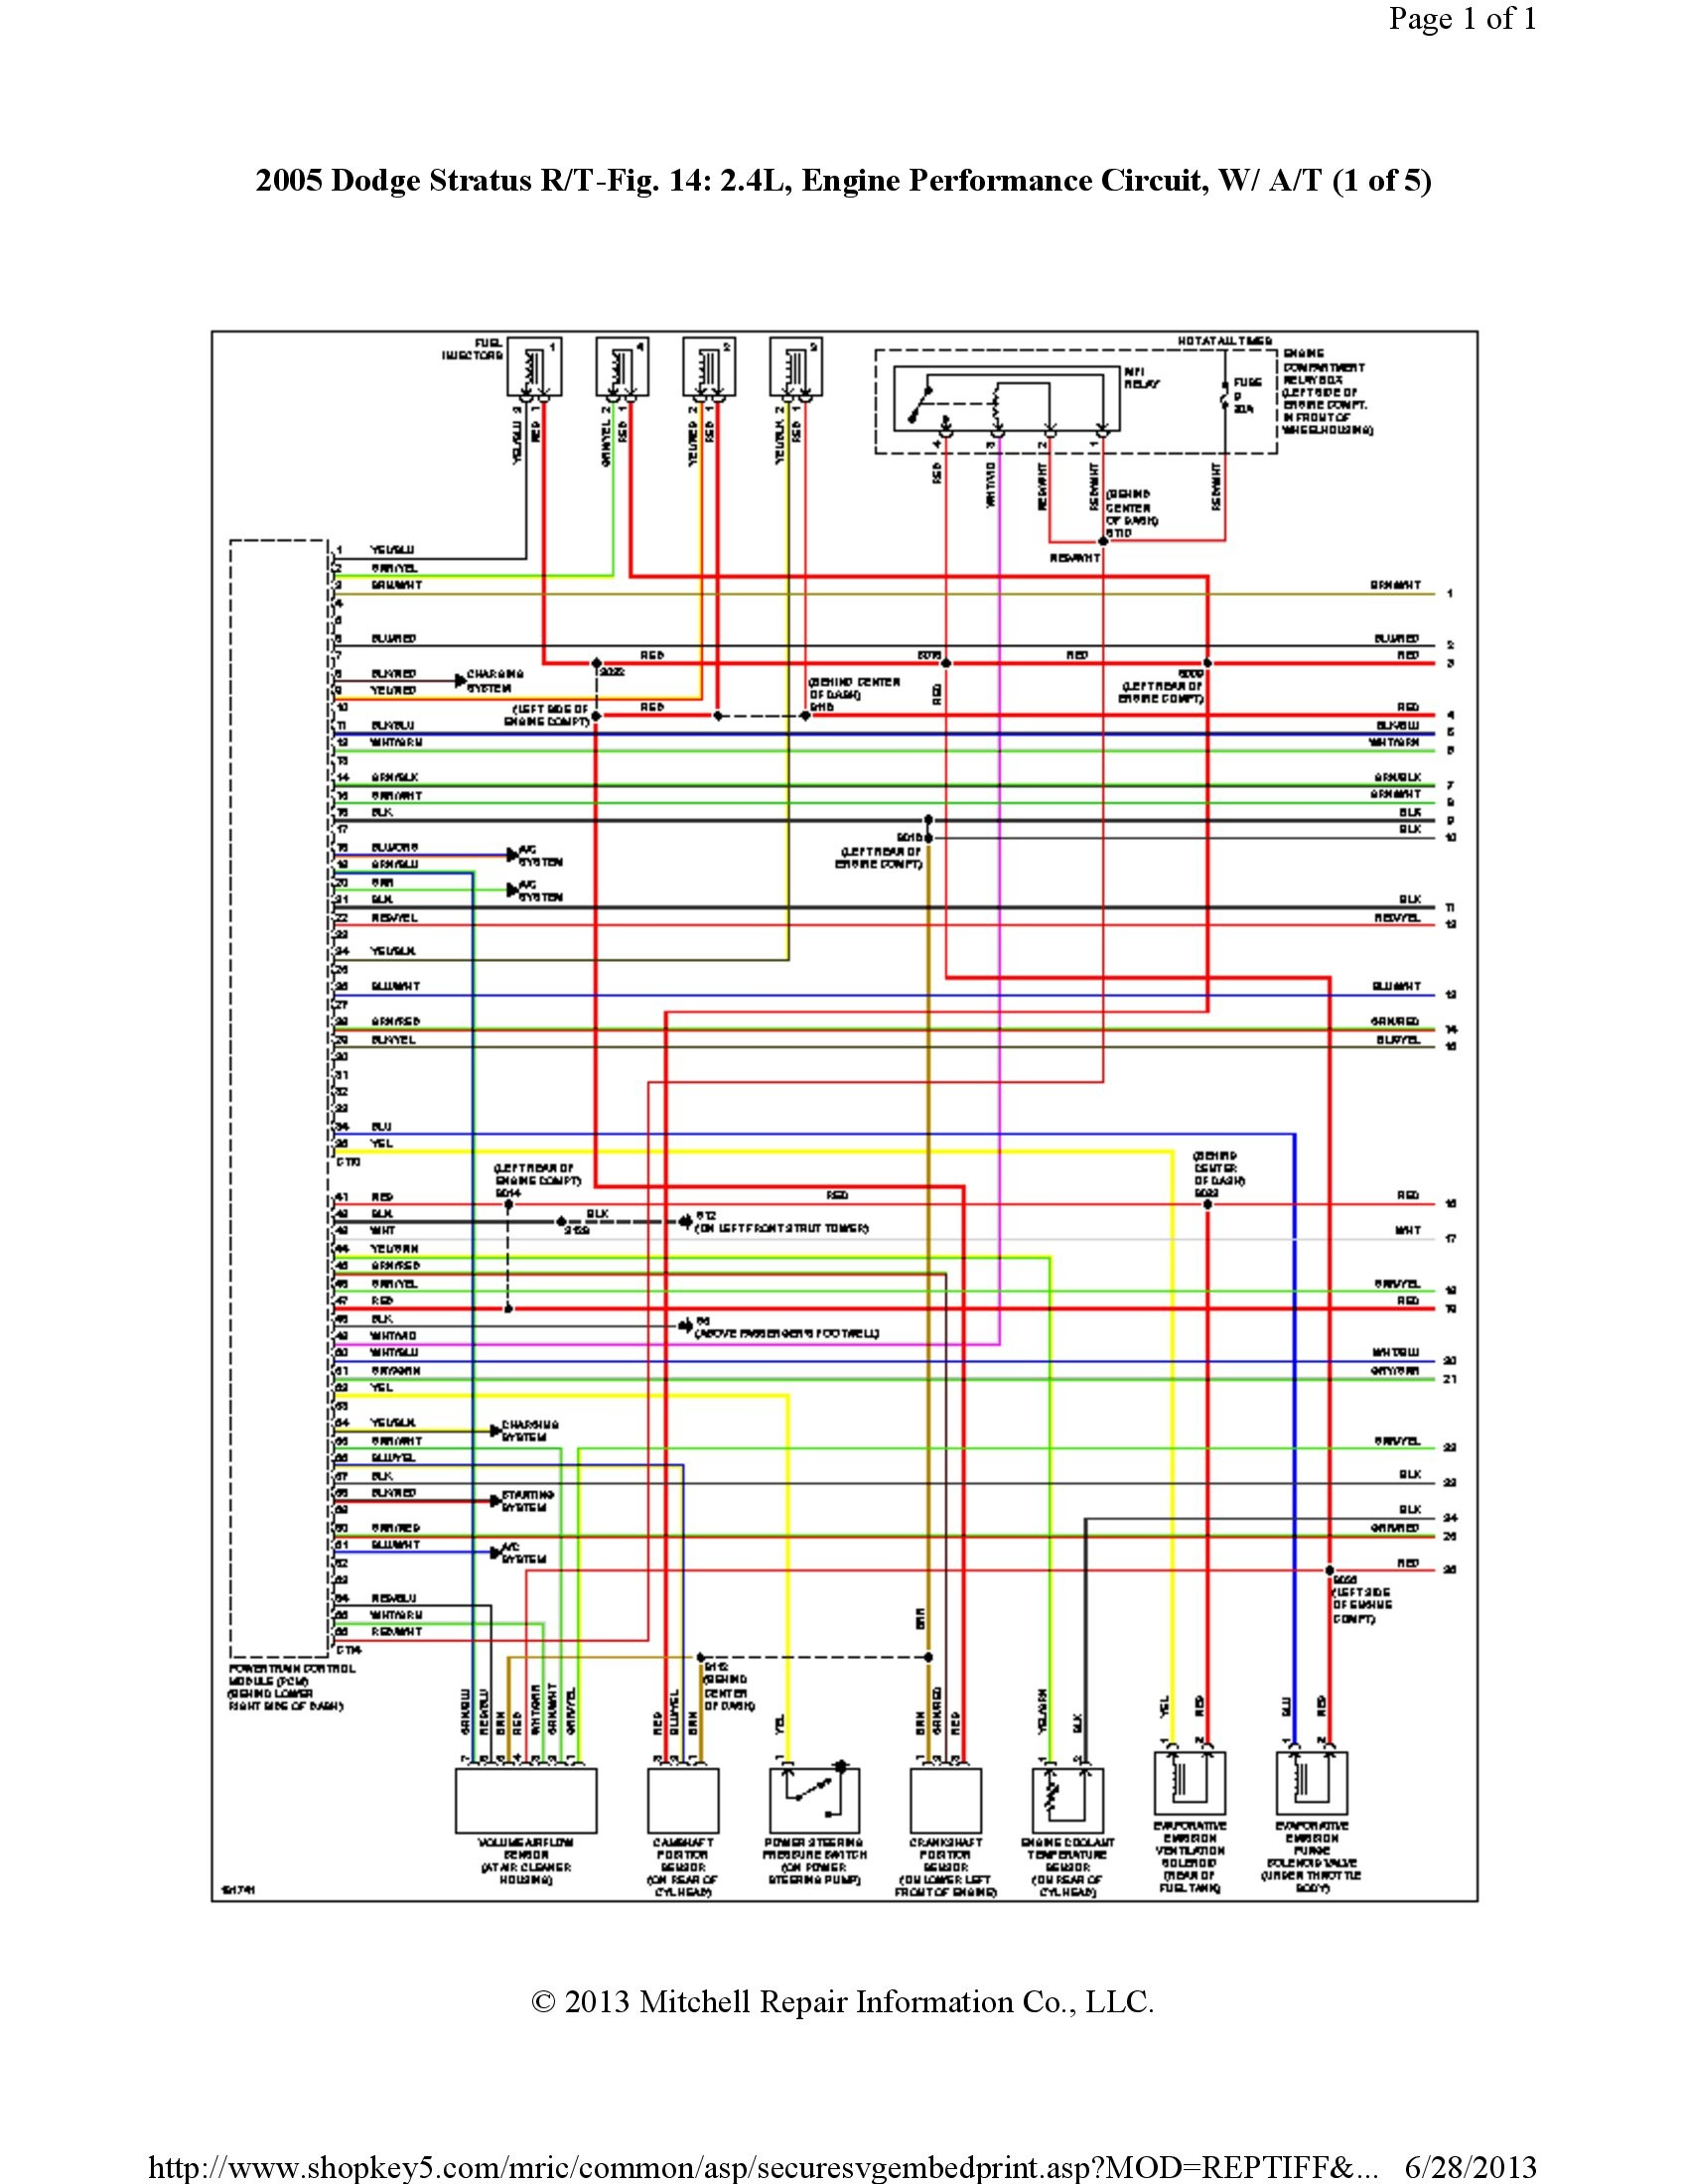 dodge stratus wiring diagram my wiring diagram rh detoxicrecenze com 2003 Dodge Stratus Sedan Winter Dodge Stratus